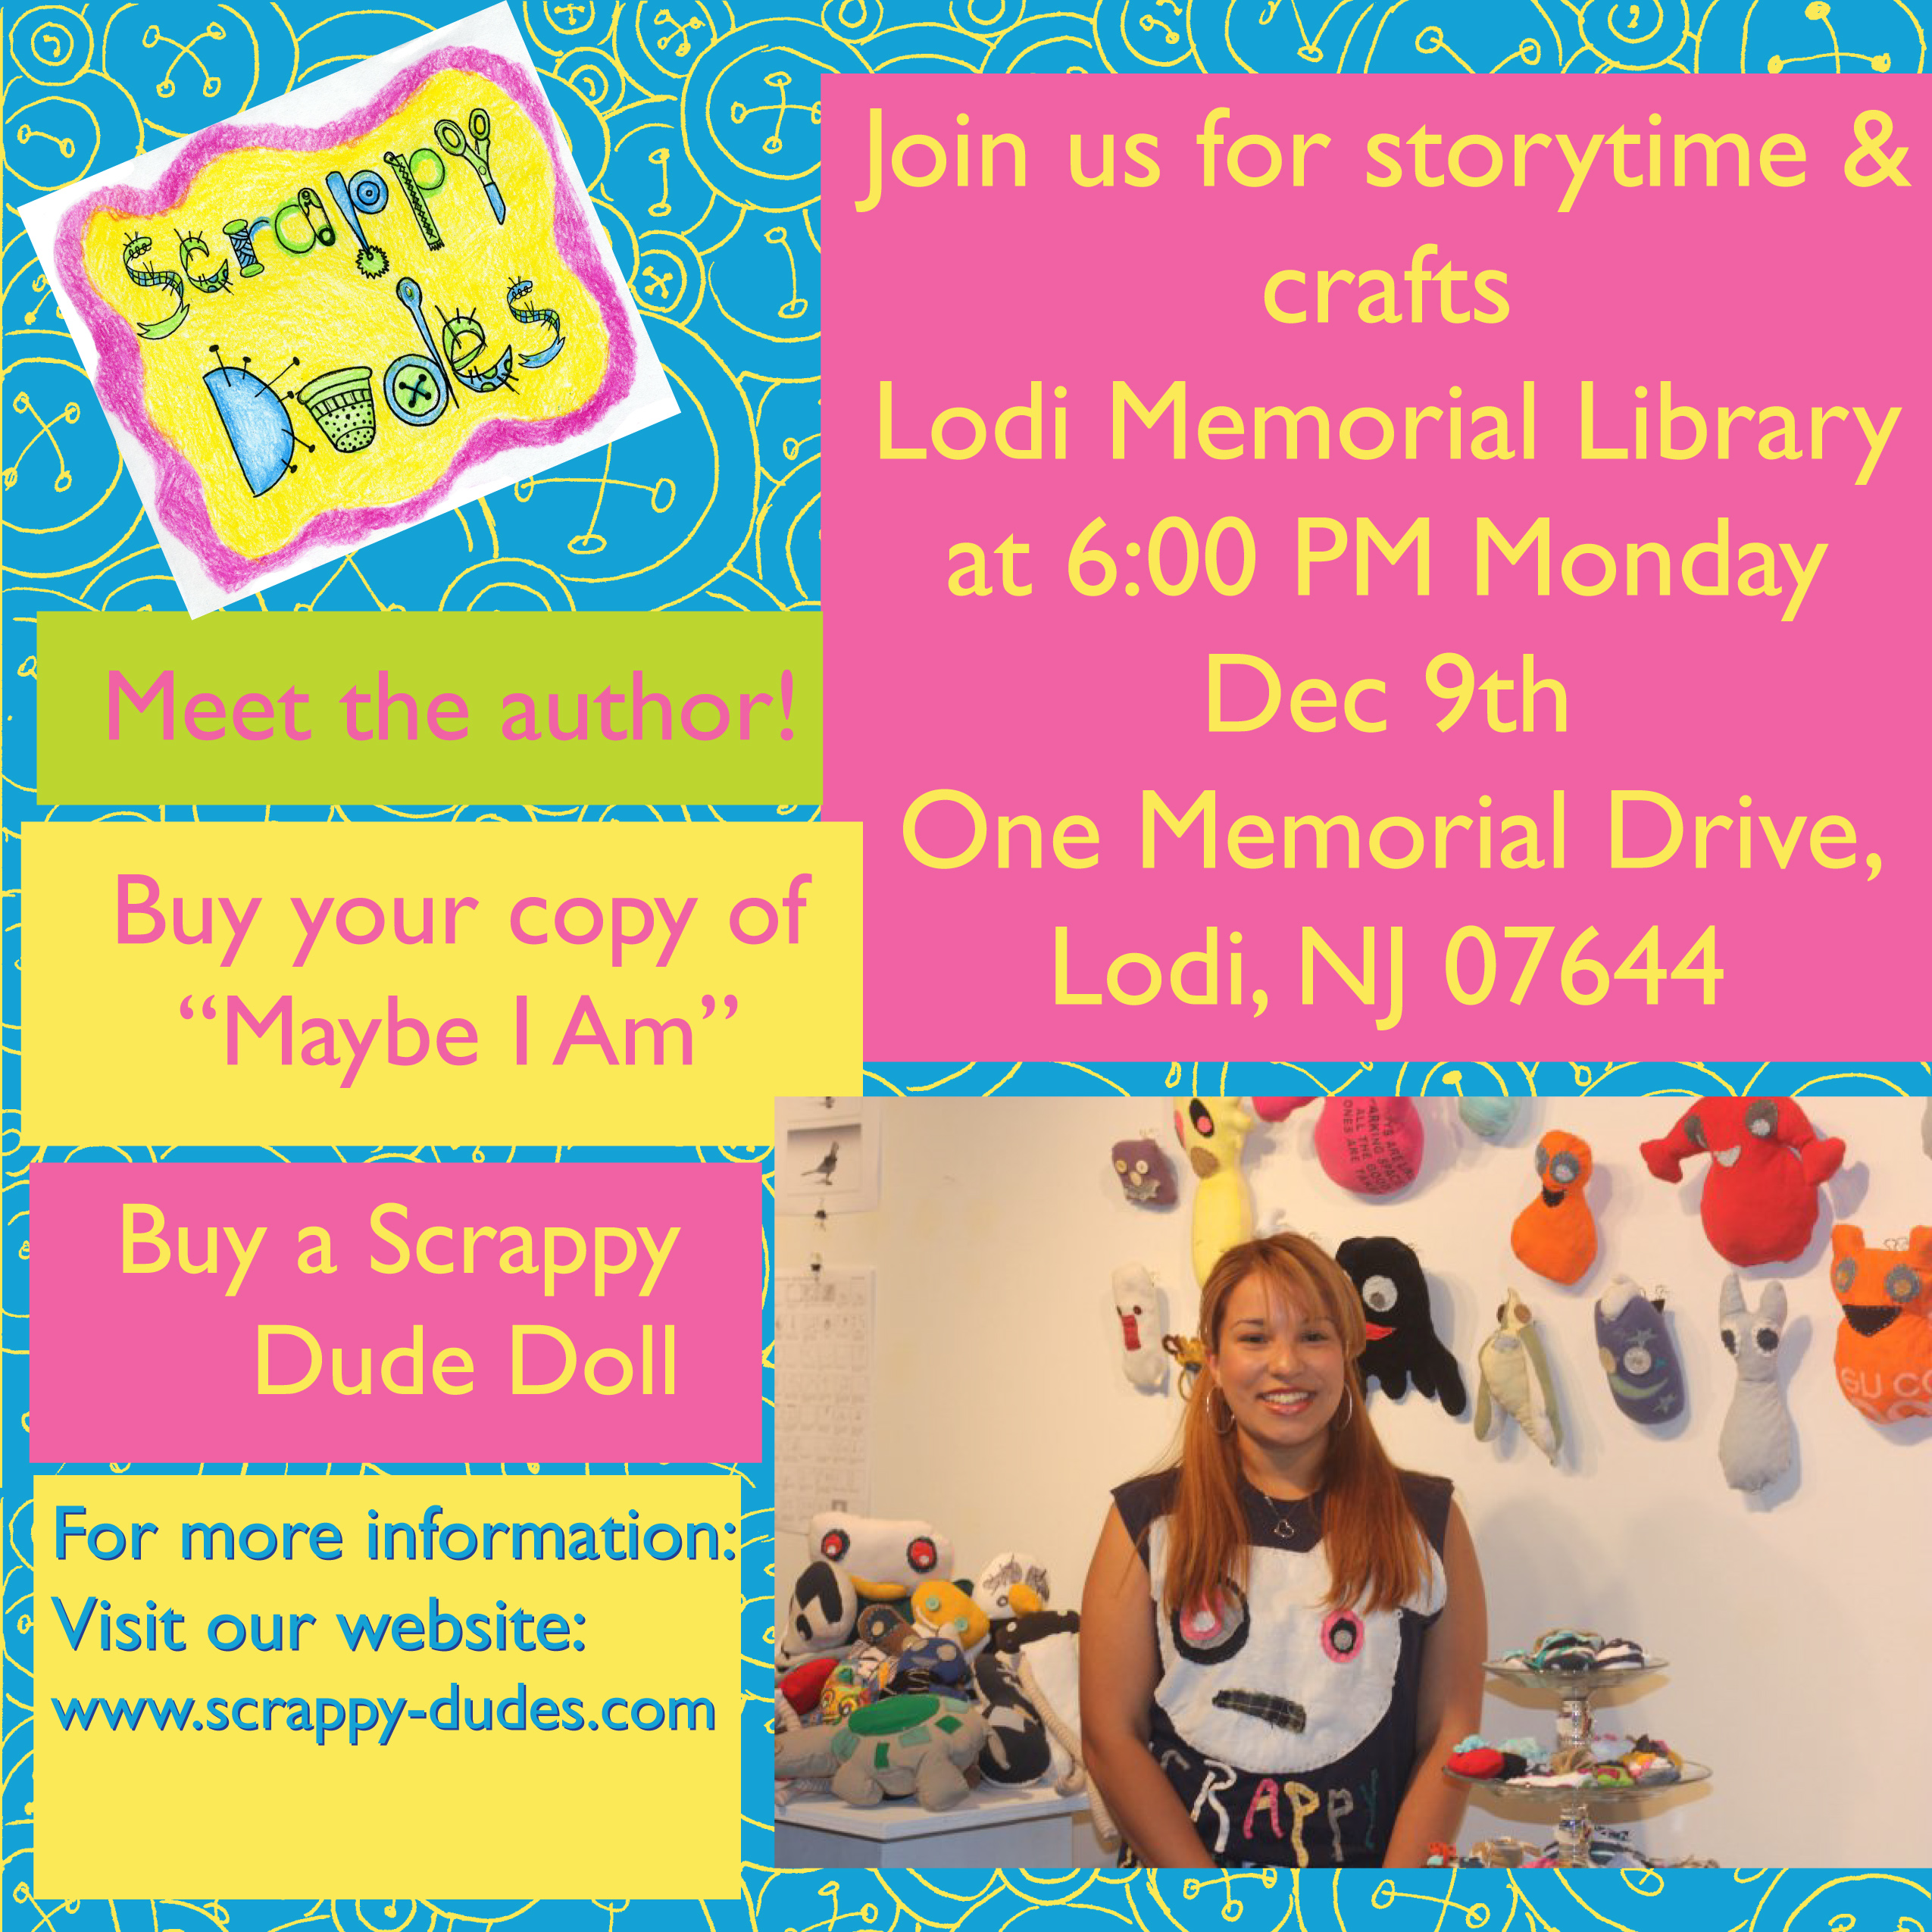 Scrappy Dudes will be at the Lodi Memorial Library – Dec 9th, 2013